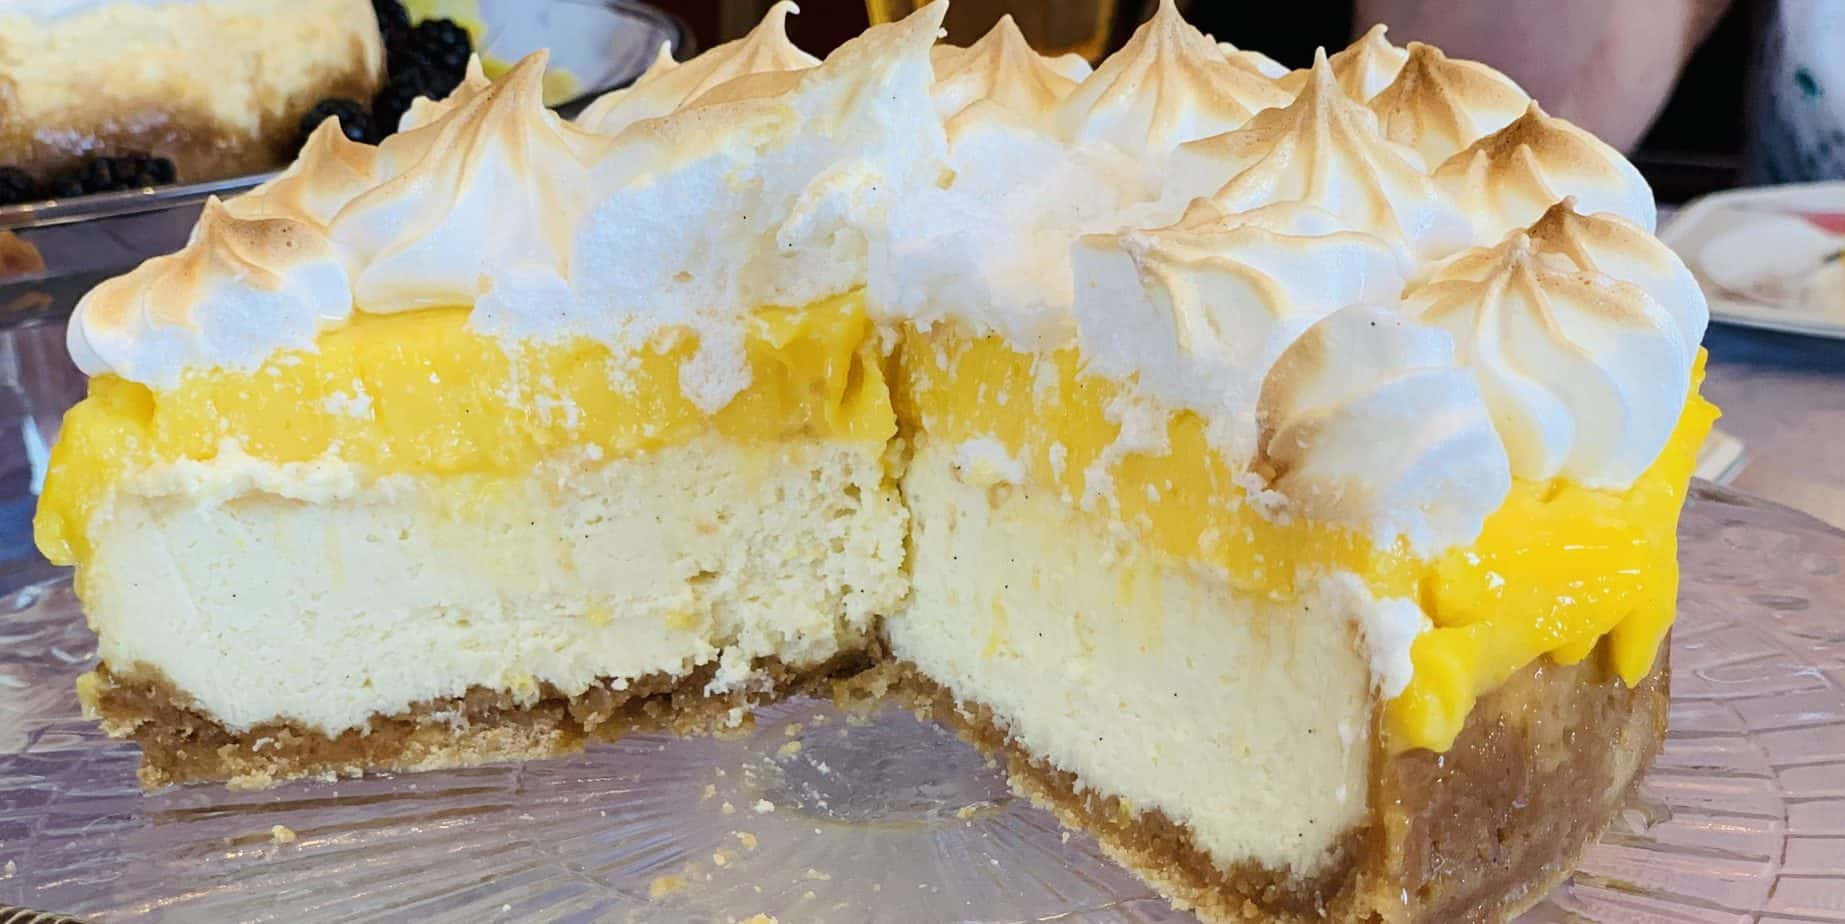 lemon meringue cheesecake, dessert, lemon, cheesecake, Ninja Foodi, Ninja Foodi recipe, instant pot, instant pot recipe, meringue, lemon curd, pie